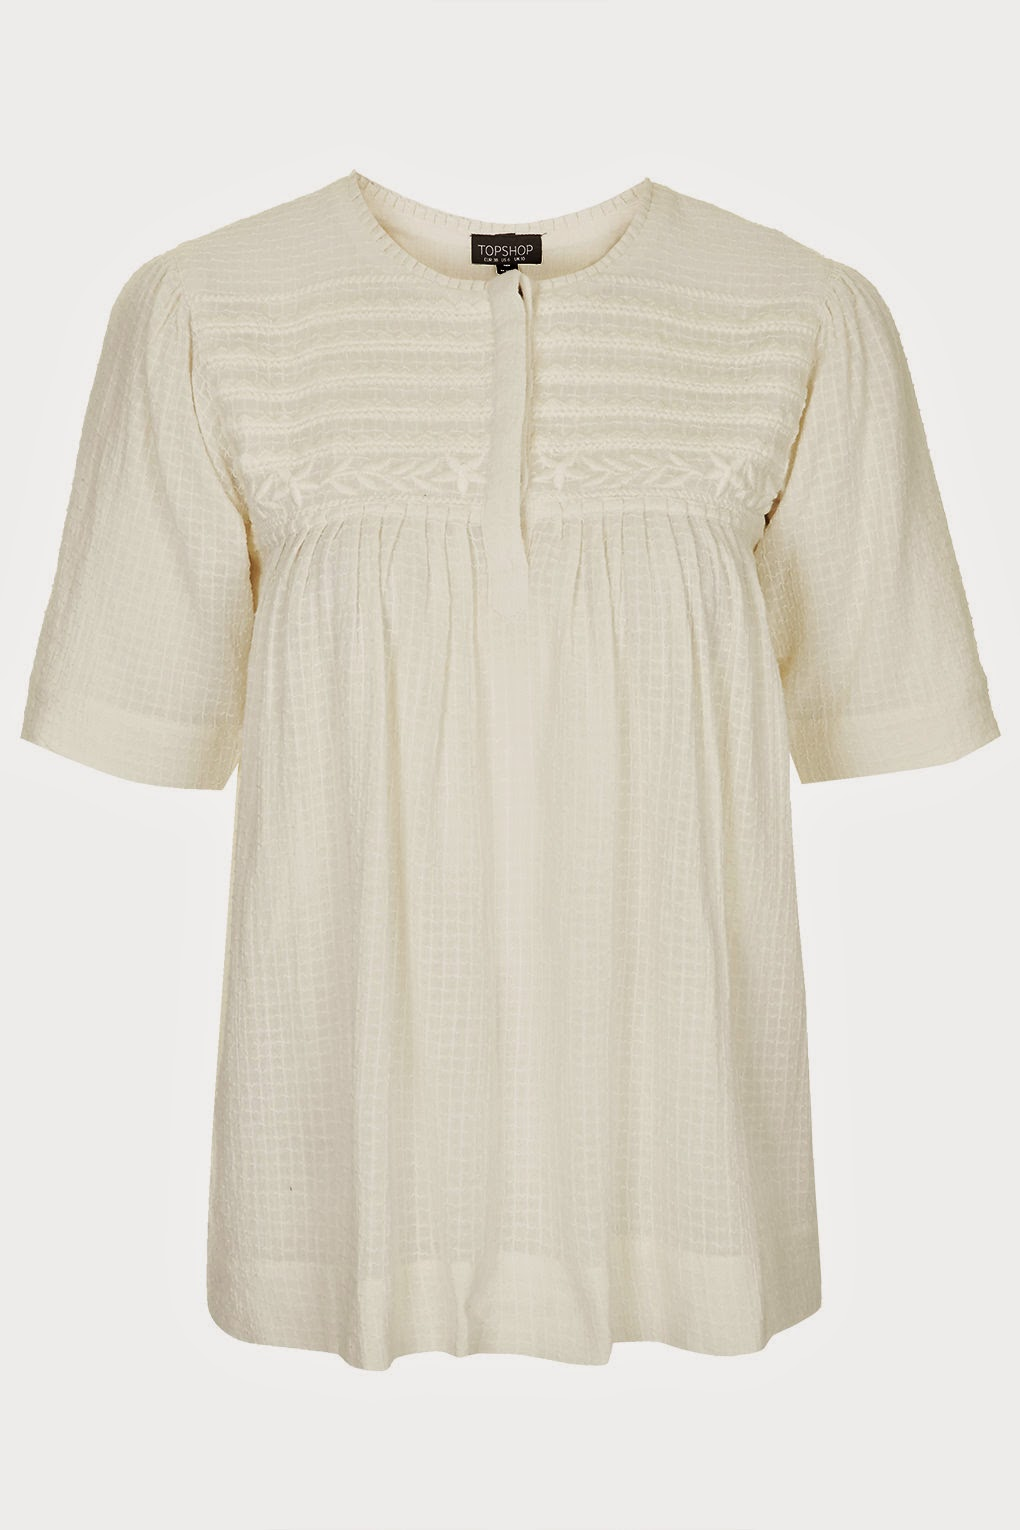 cream cotton top topshop, embroidered cream top,